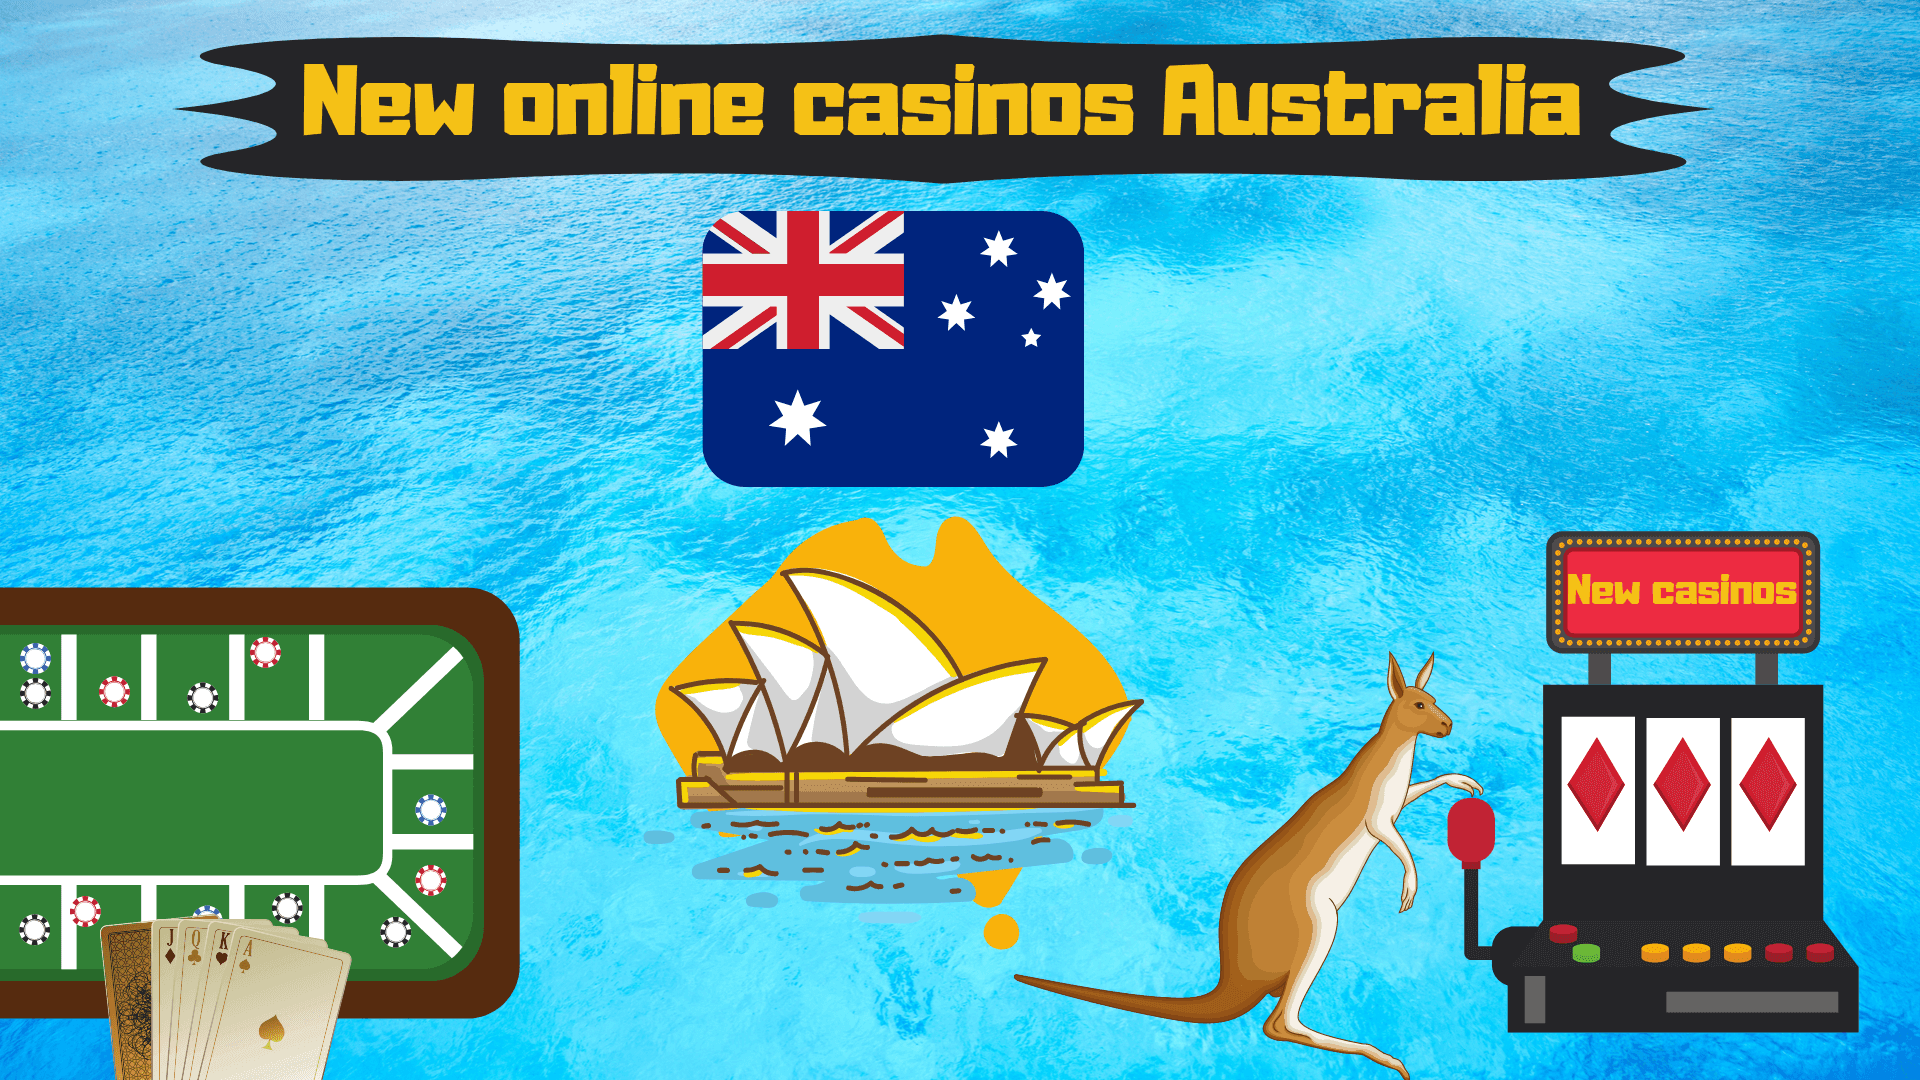 New Online Casinos Australia